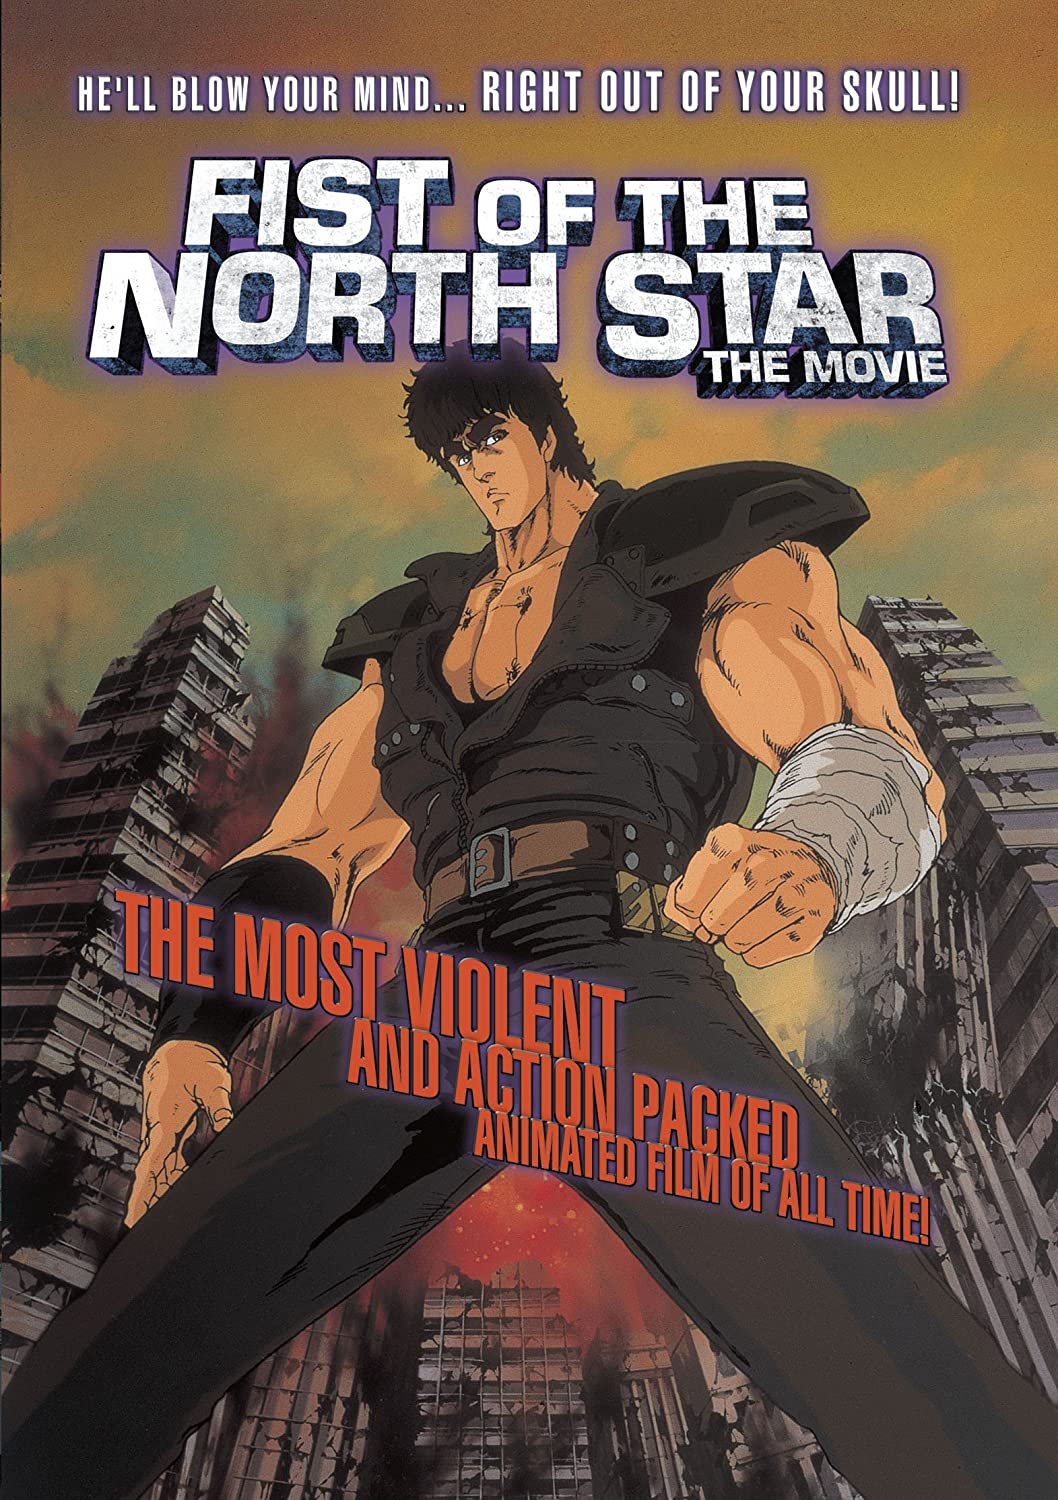 fist of the north star intro